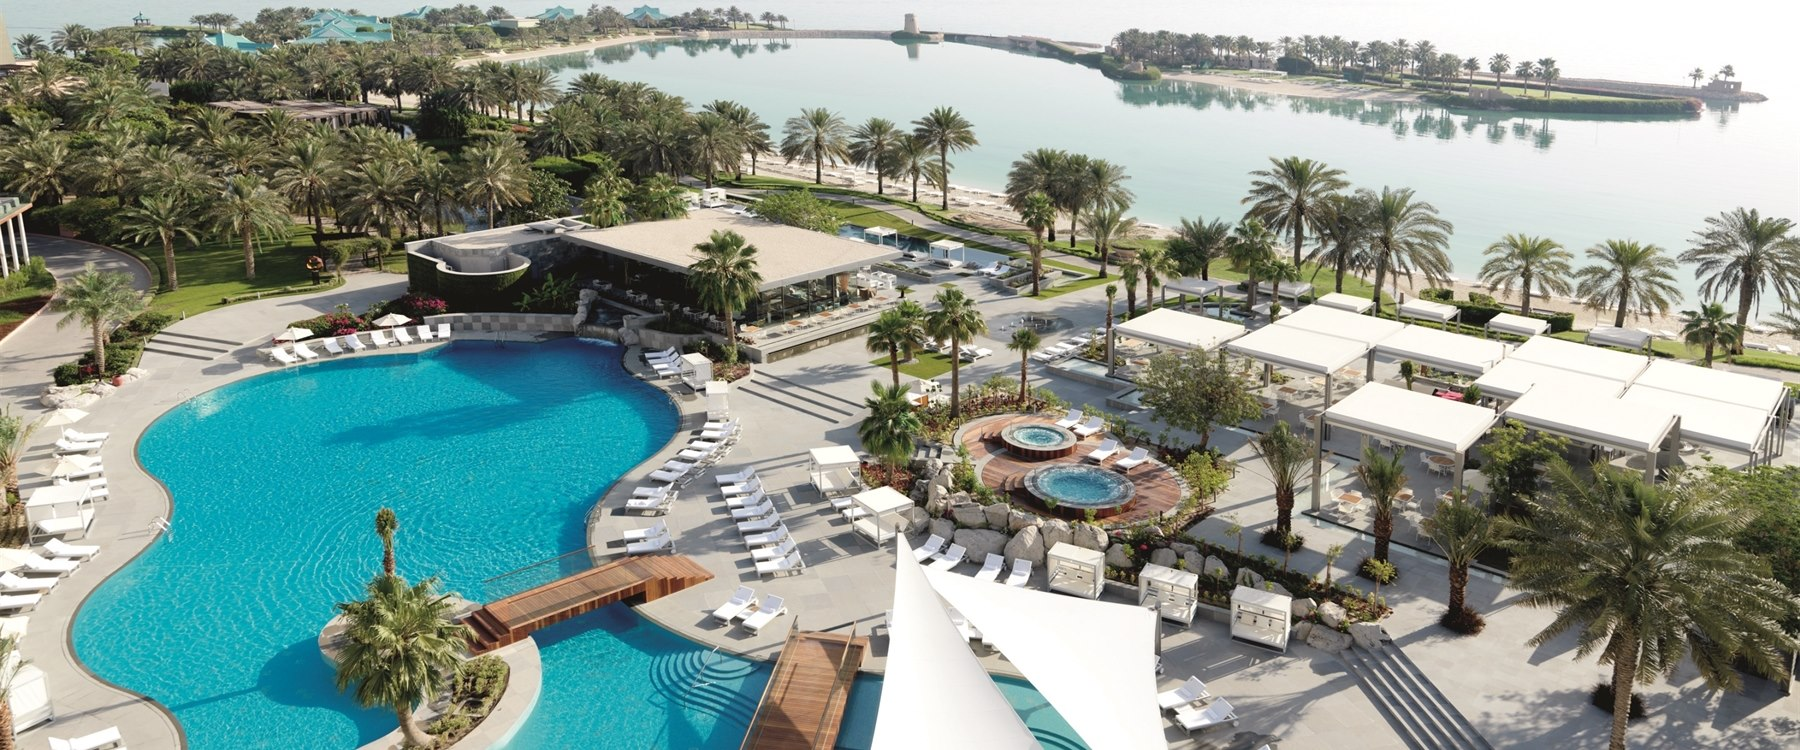 Hotel Overview at The Ritz Carlton Bahrain Hotel Villas and Spa